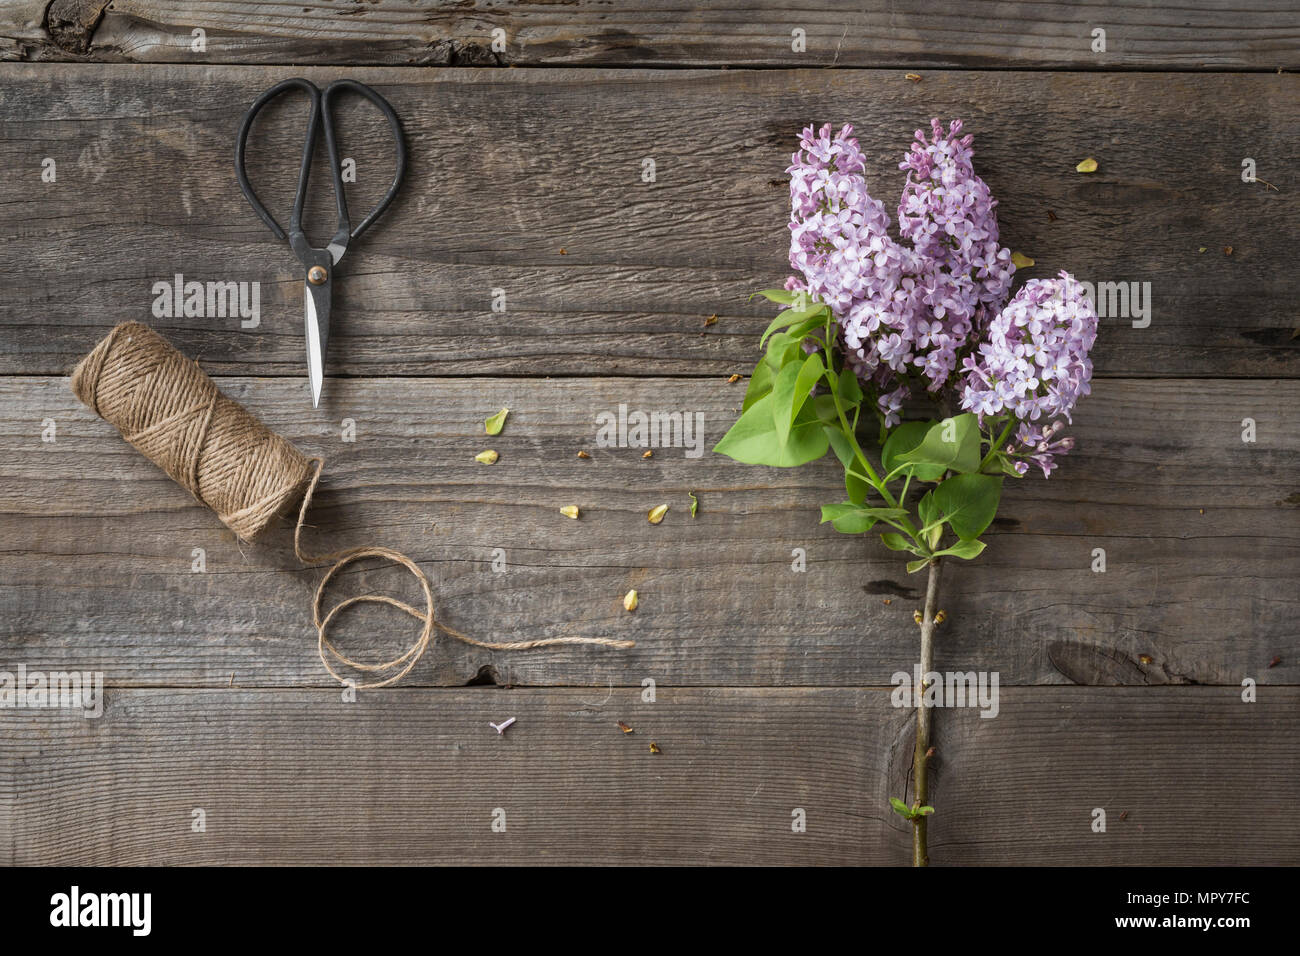 Overhead view of flowers with string and scissors on wooden table - Stock Image